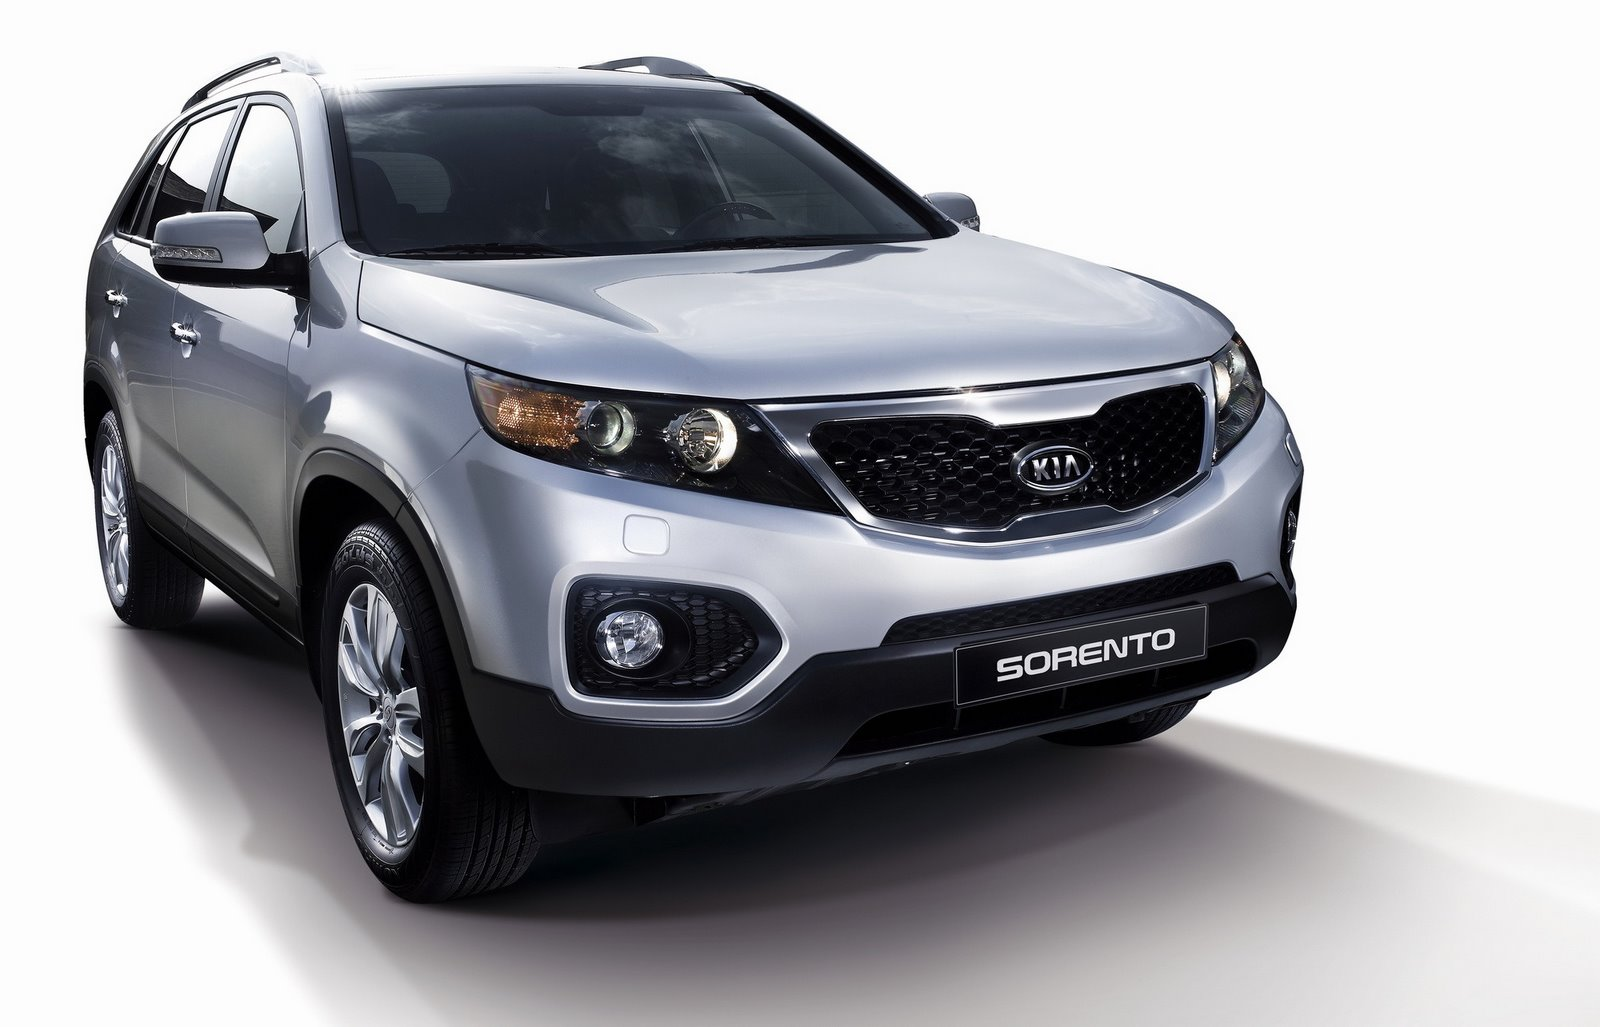 new 2010 kia sorento officially revealed details photos it s your auto world new cars. Black Bedroom Furniture Sets. Home Design Ideas